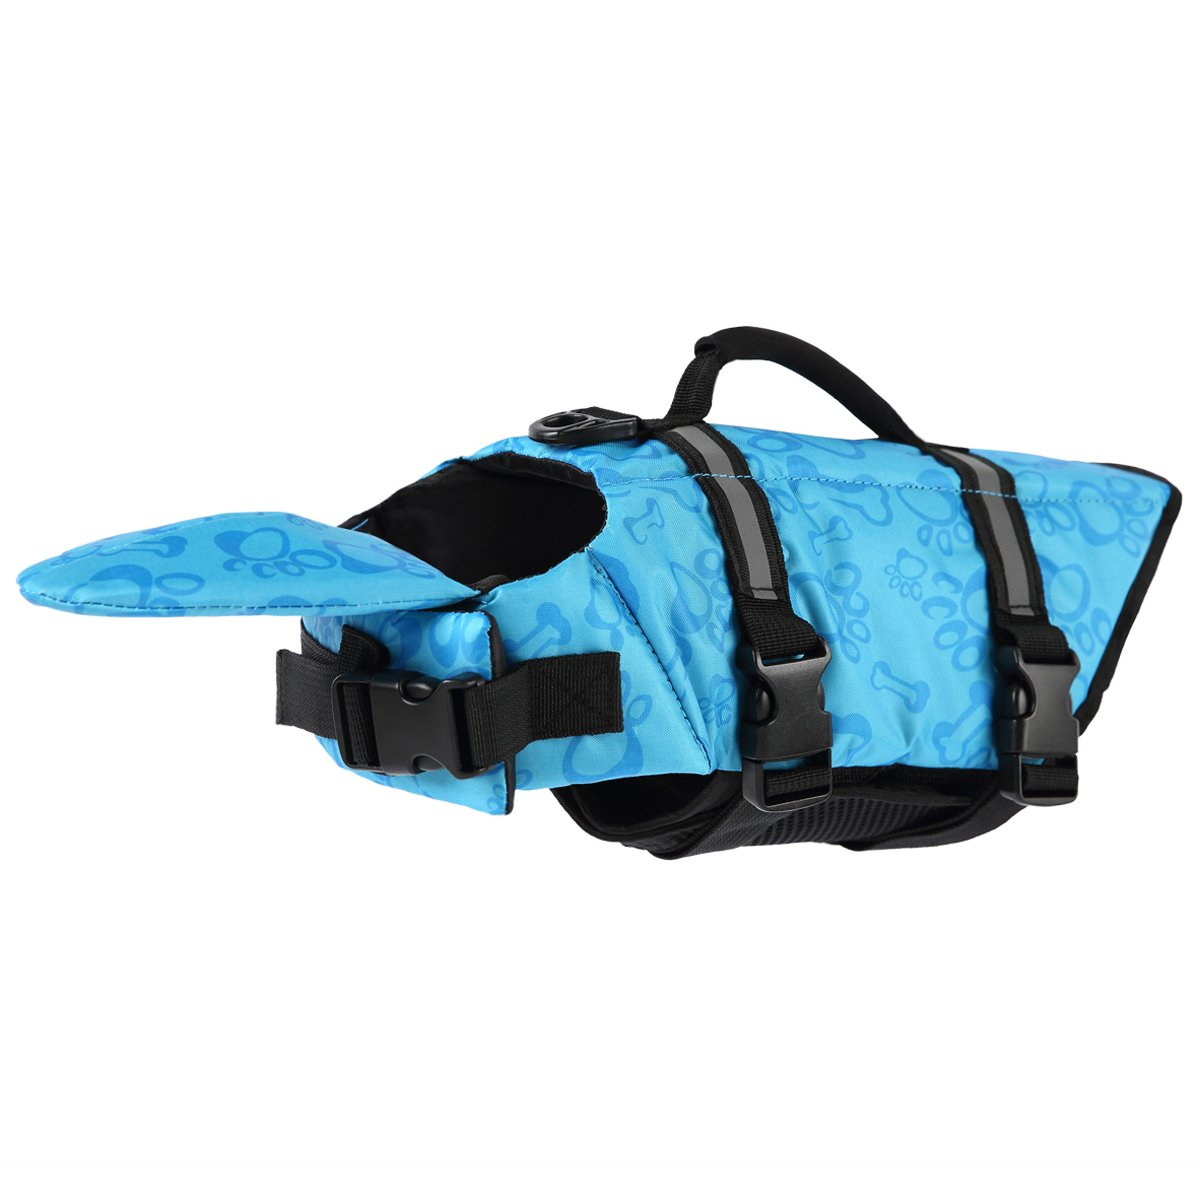 PetCee Dog Life Jacket XL,Dog Life Extra Large Jacket That Well Secure Your Dog's Safety and Quick Release Easy-Fit Adjustable Life Vest for Dogs (Blue, XL)